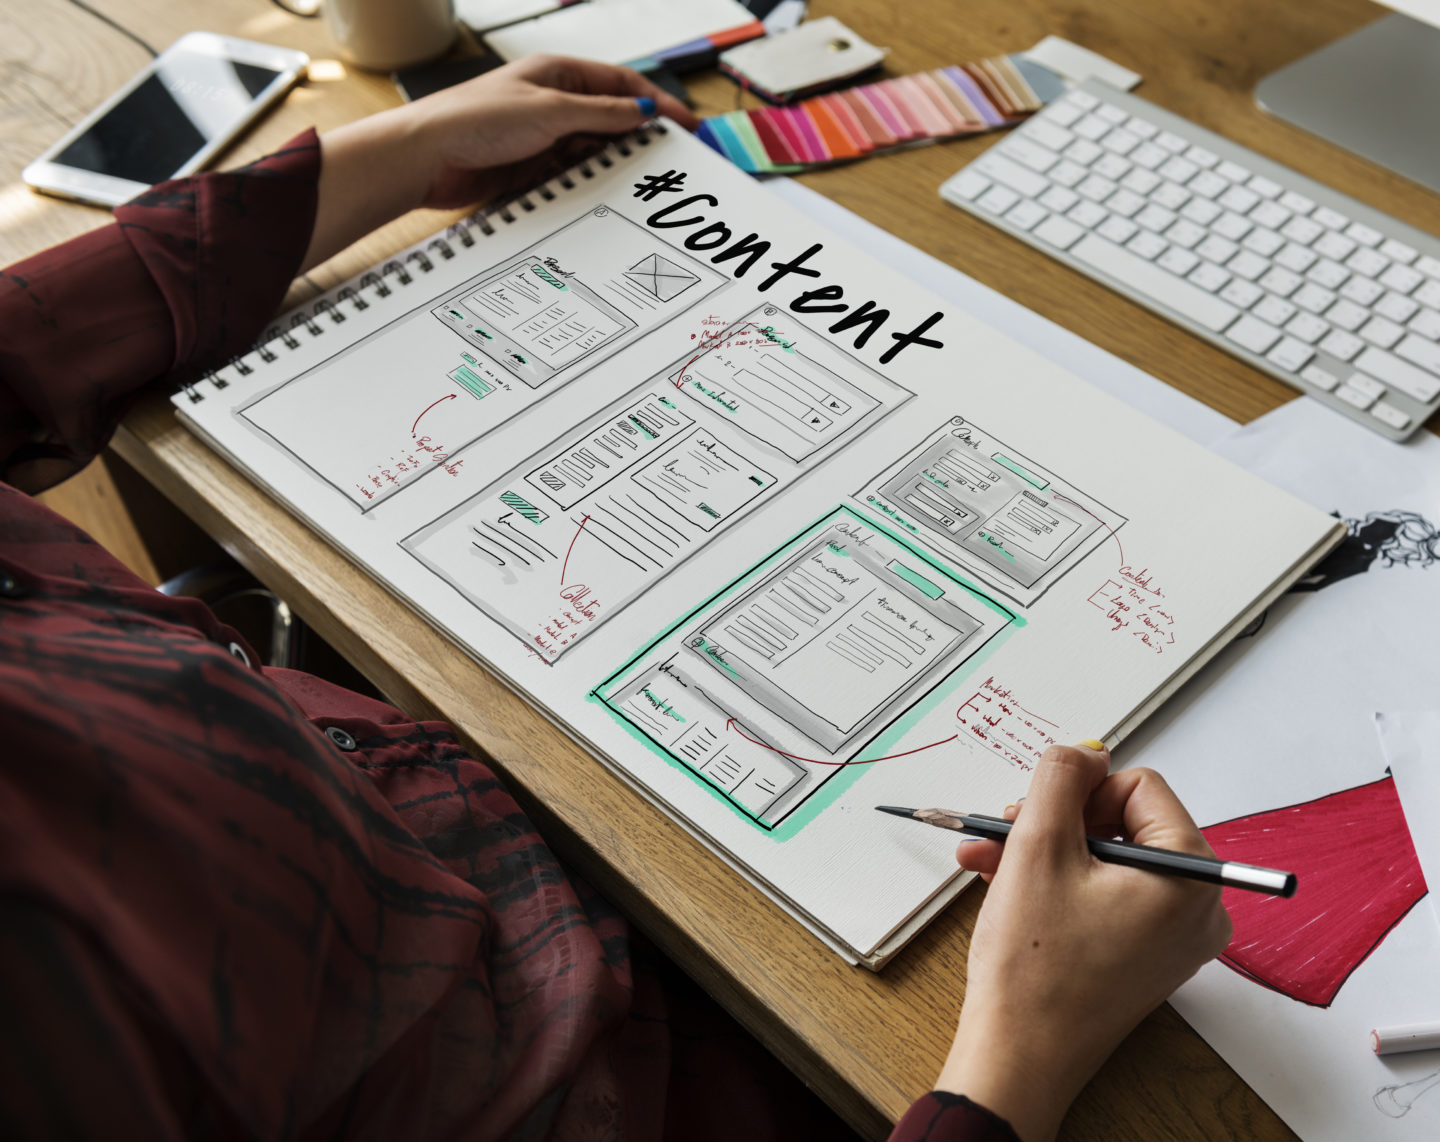 person working on content and design at desk